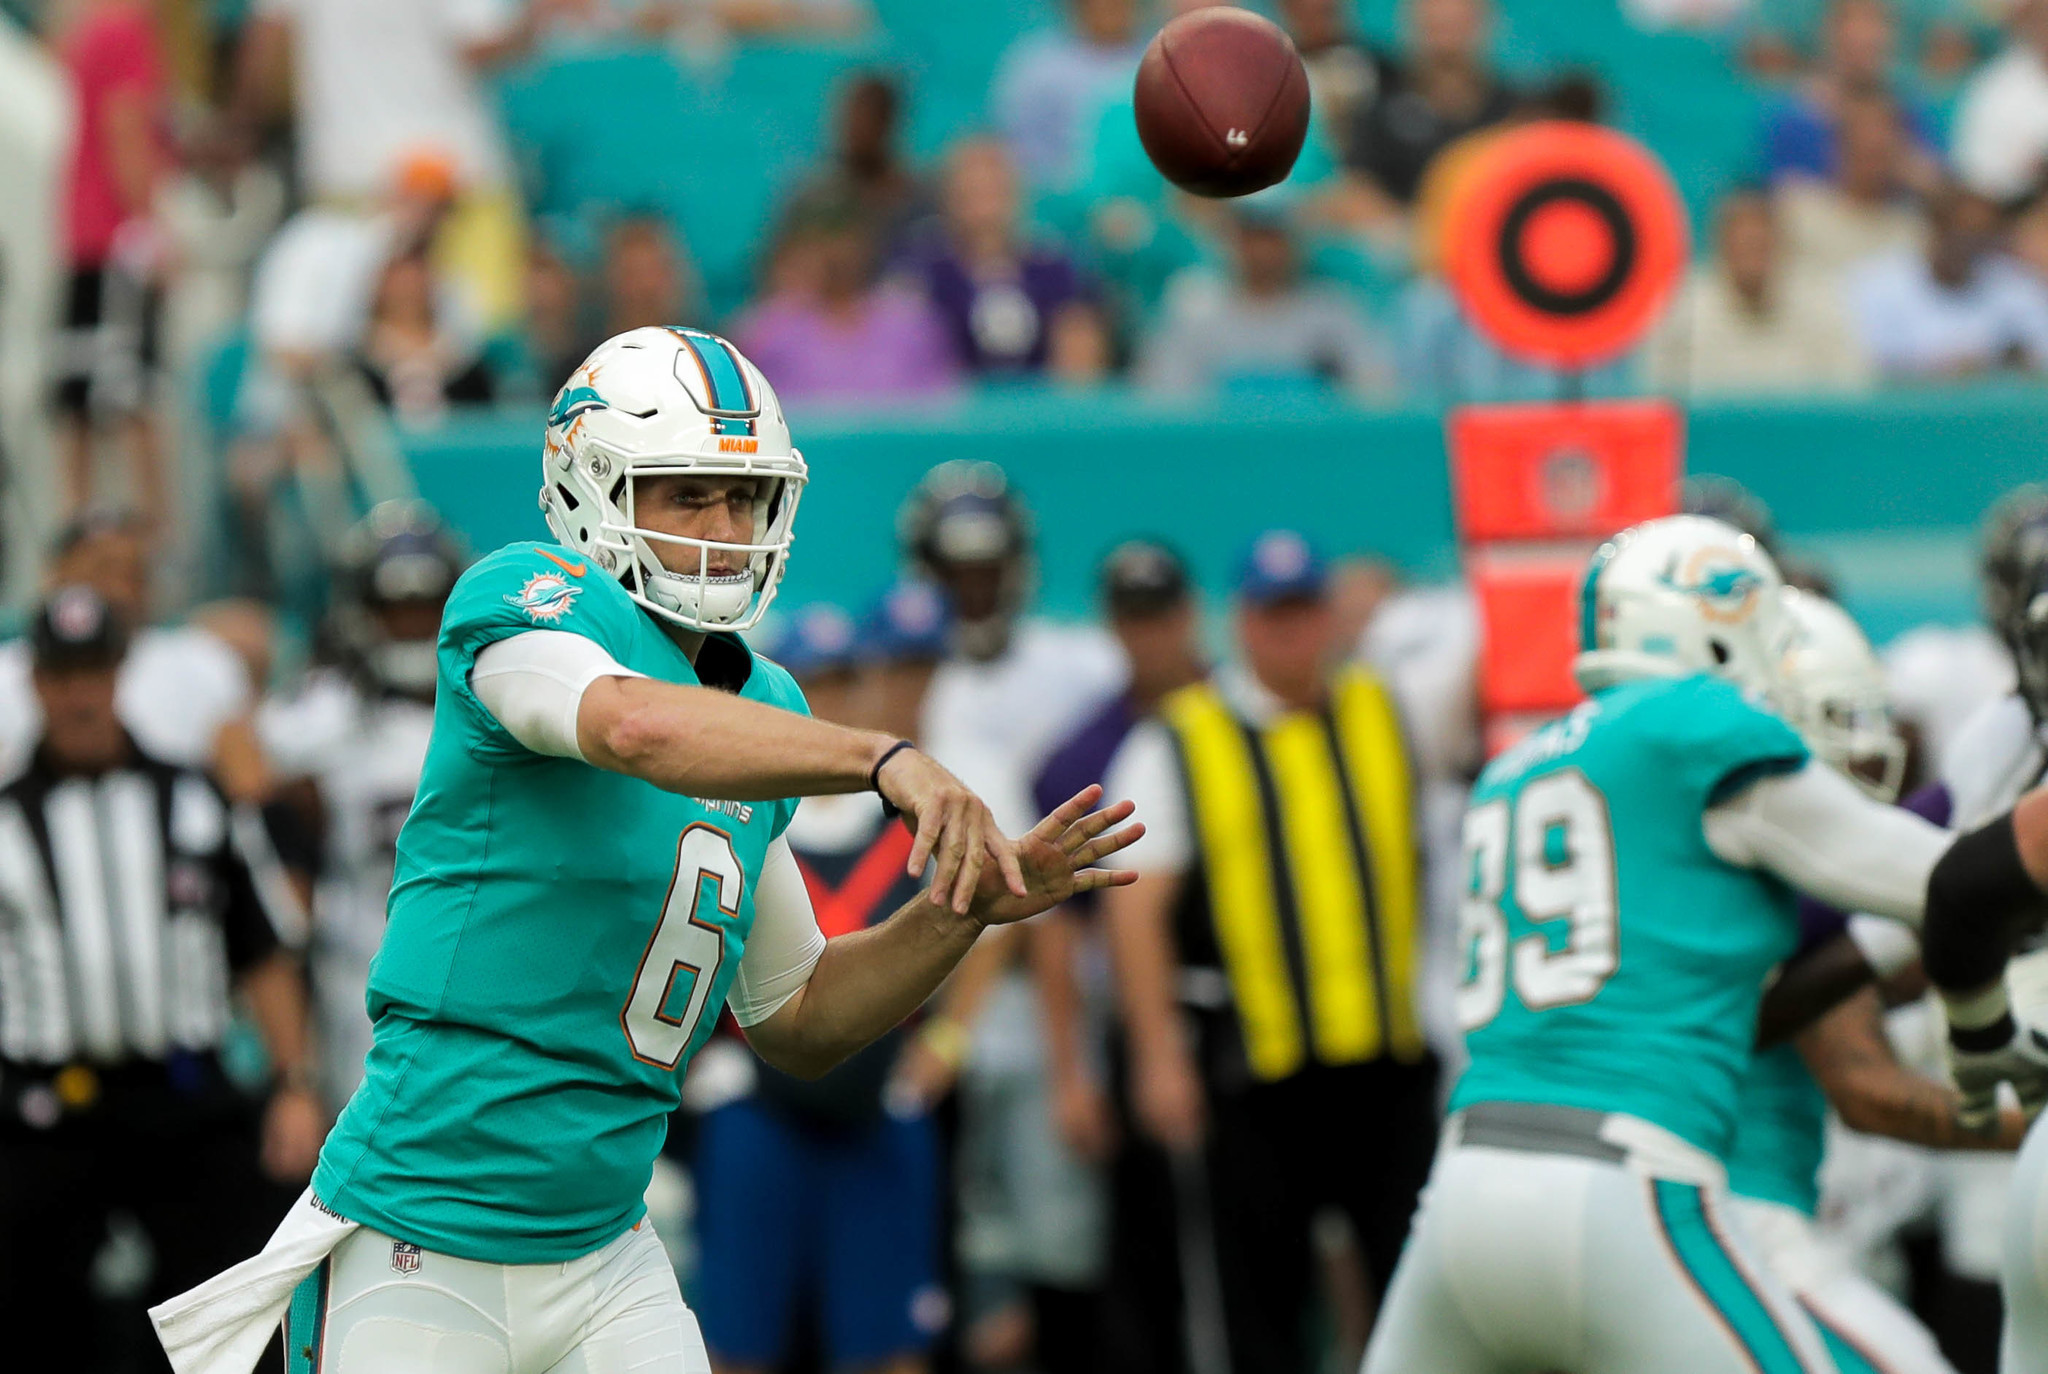 Sfl-dolphins-kelly-10-things-dolphins-need-to-do-20170821